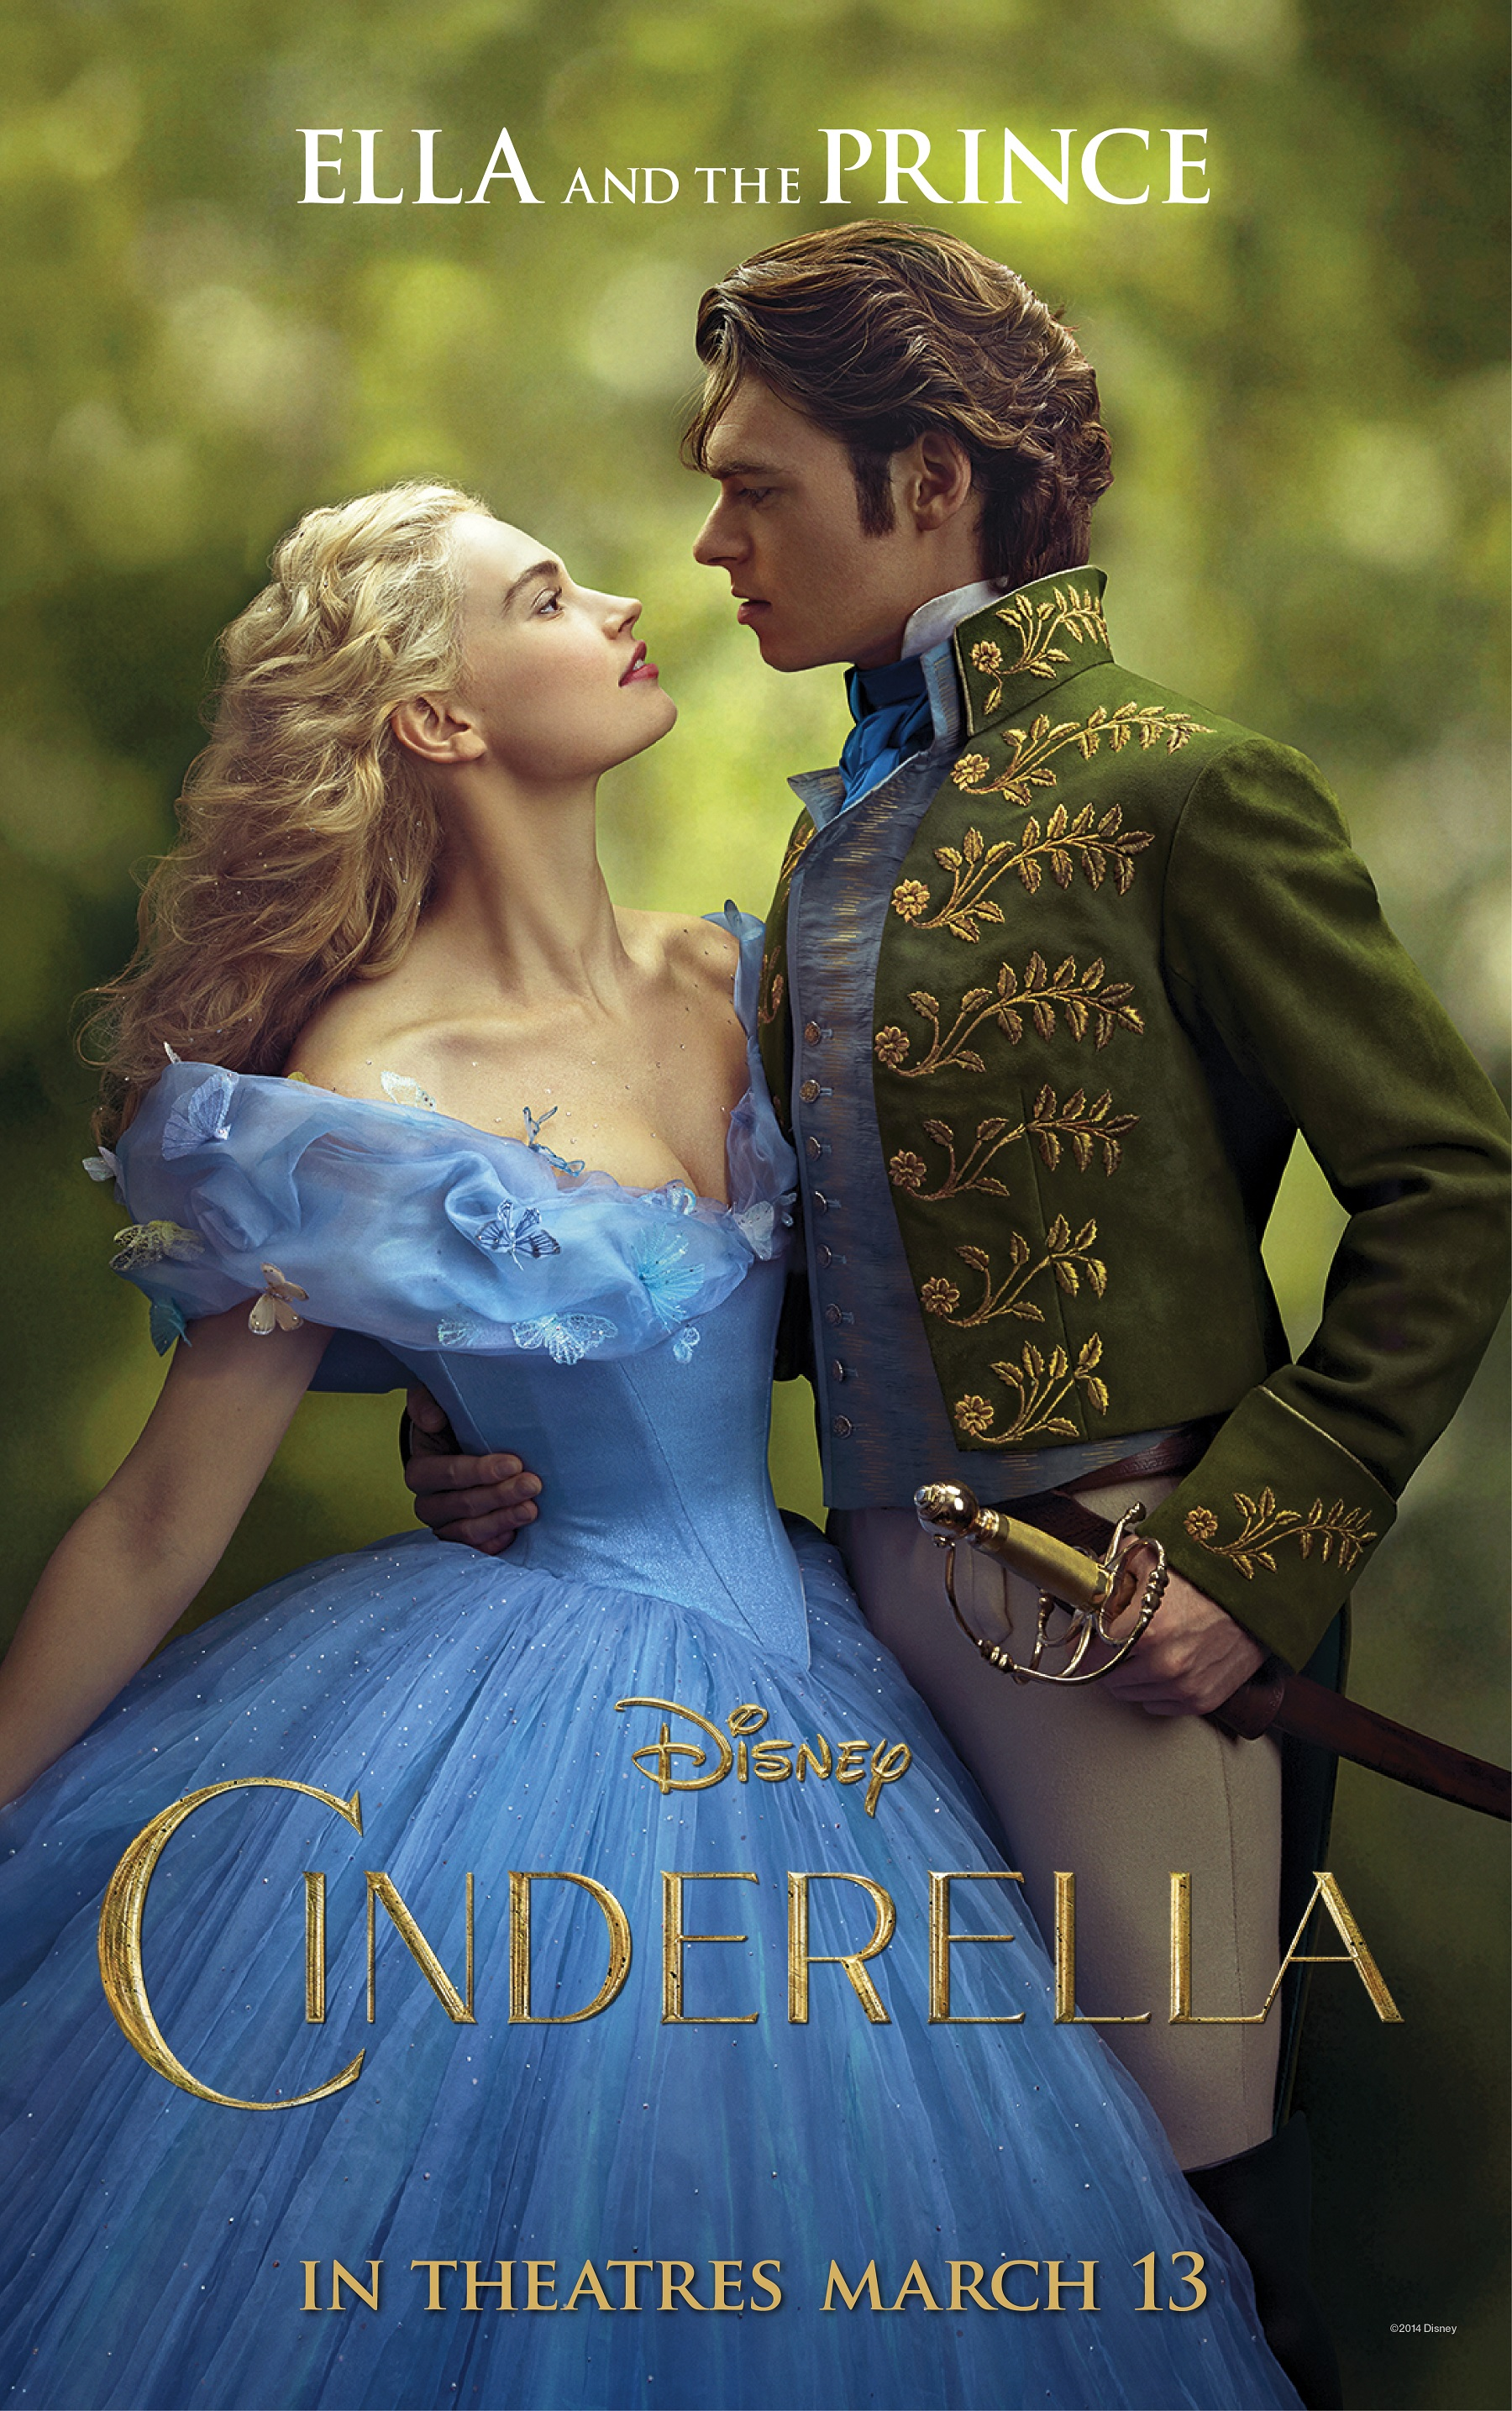 C  inderella, 2015 - directed by Kenneth Branagh and produced by Walt Disney Pictures.